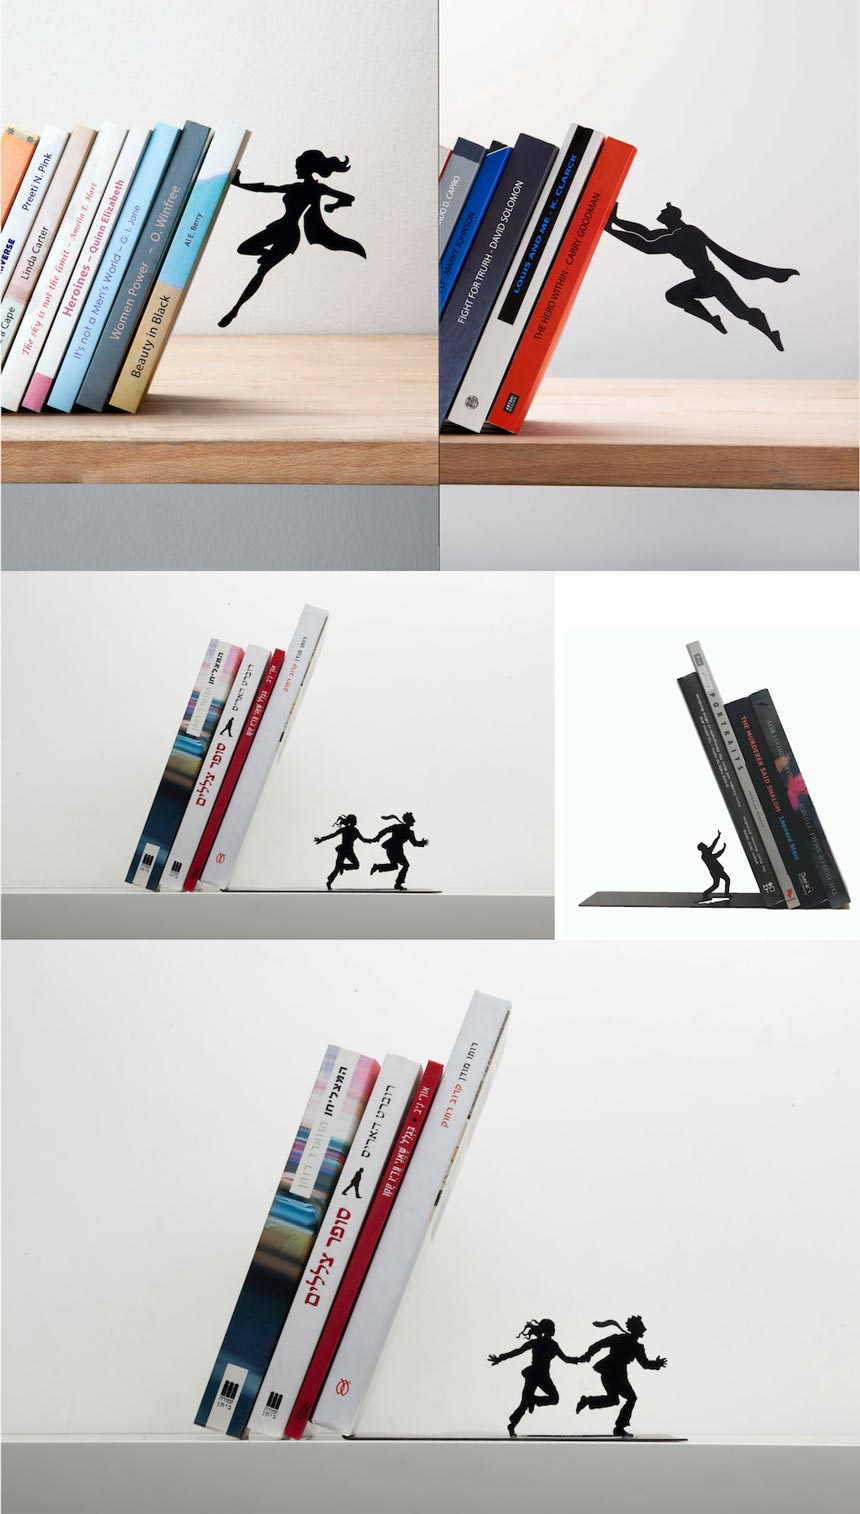 Images by Animi Causa for some interesting book ends featuring the black silhouettes of superwoman, superman or a couple running.